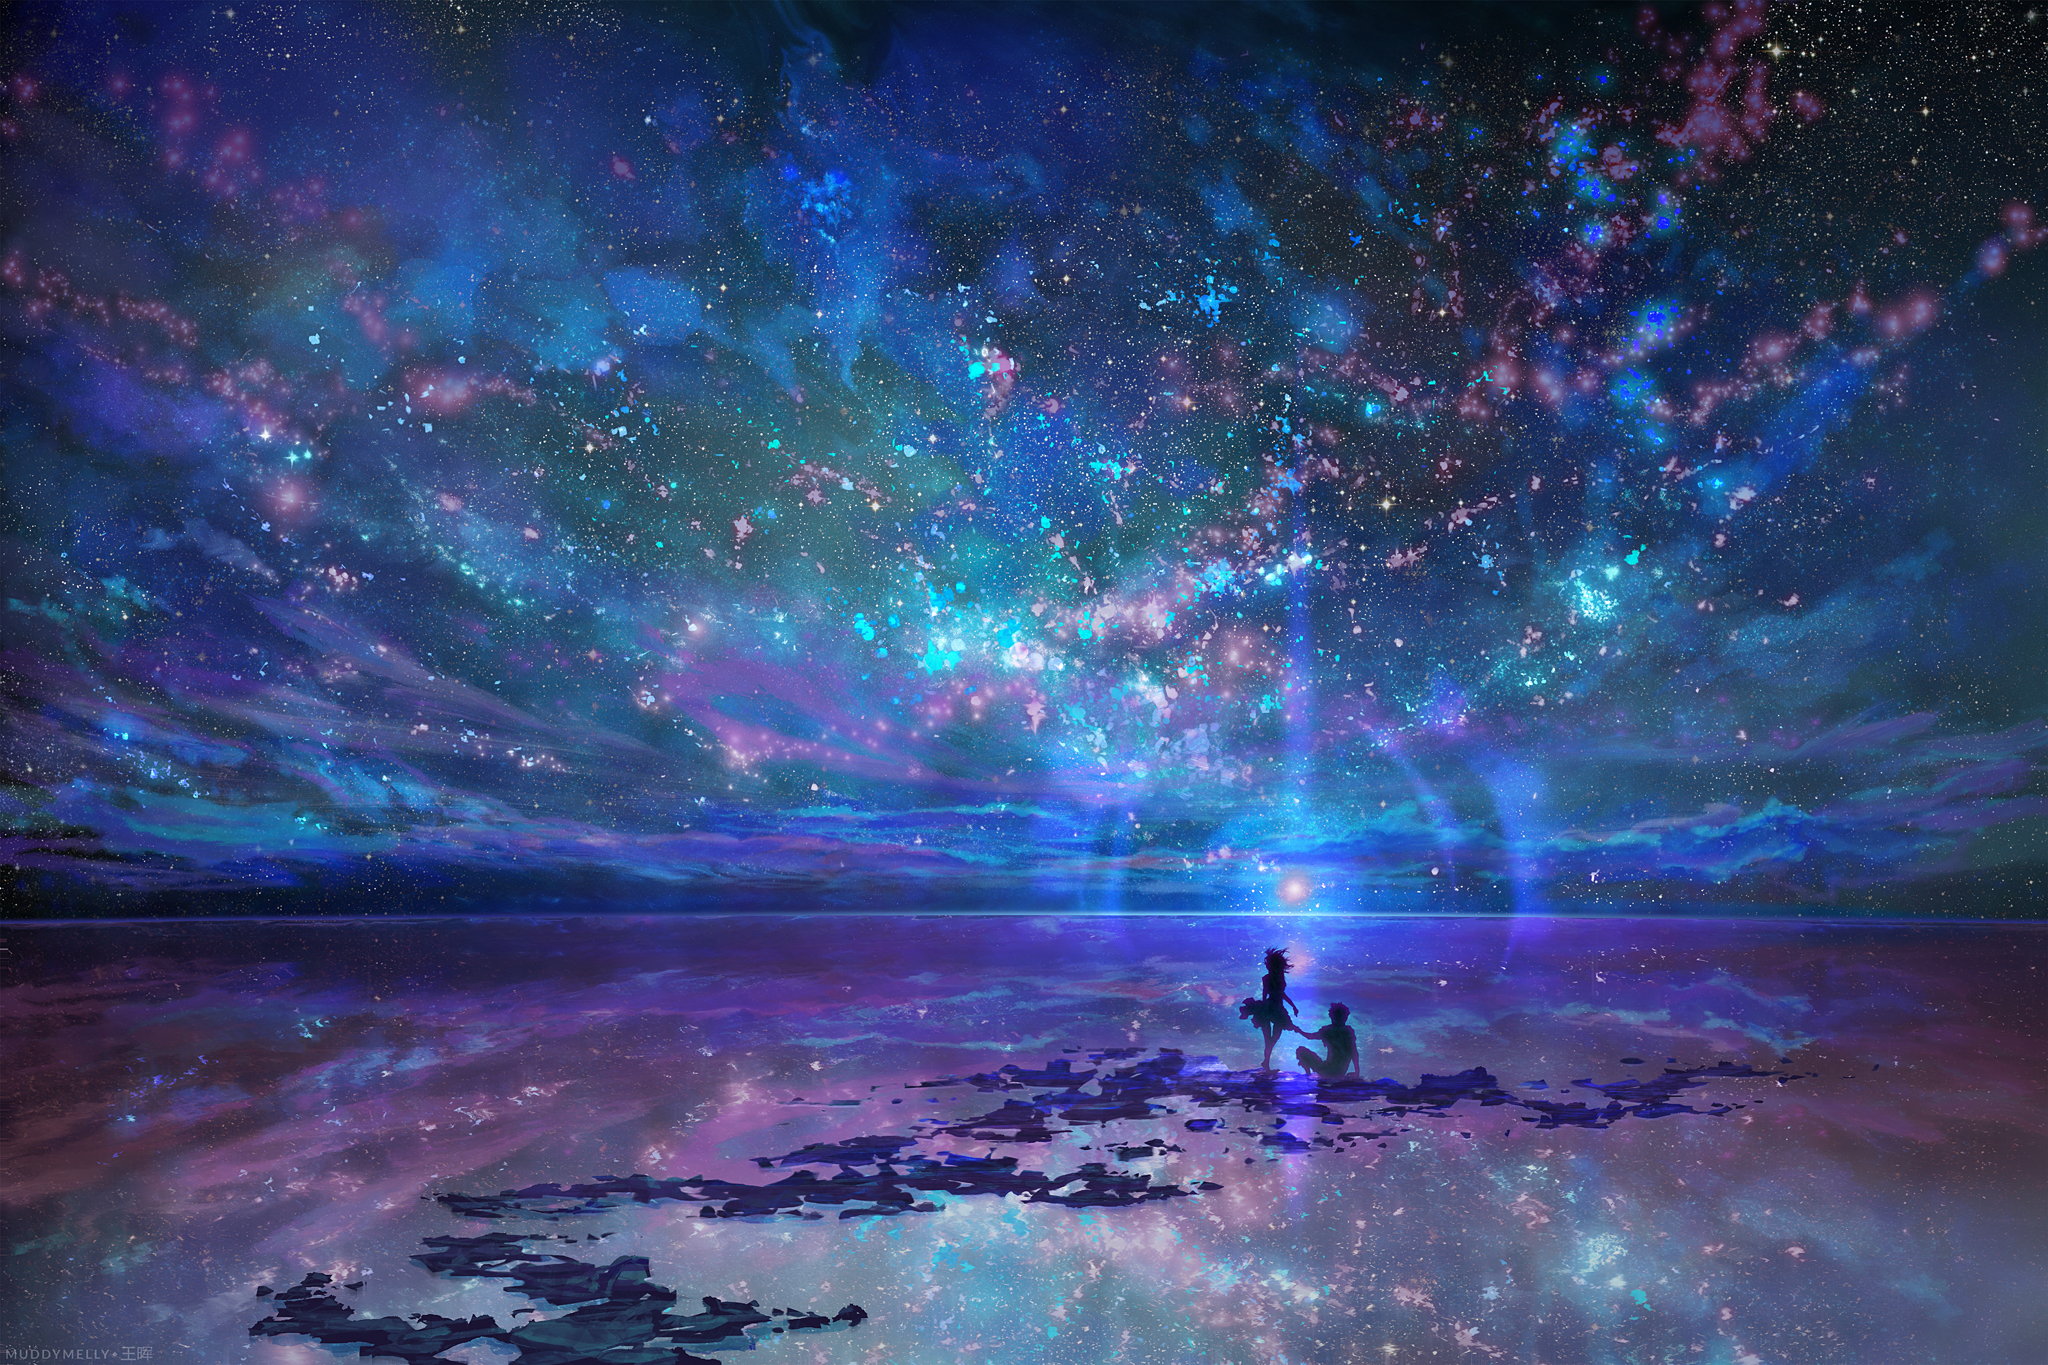 Ocean, Stars, Sky, and You